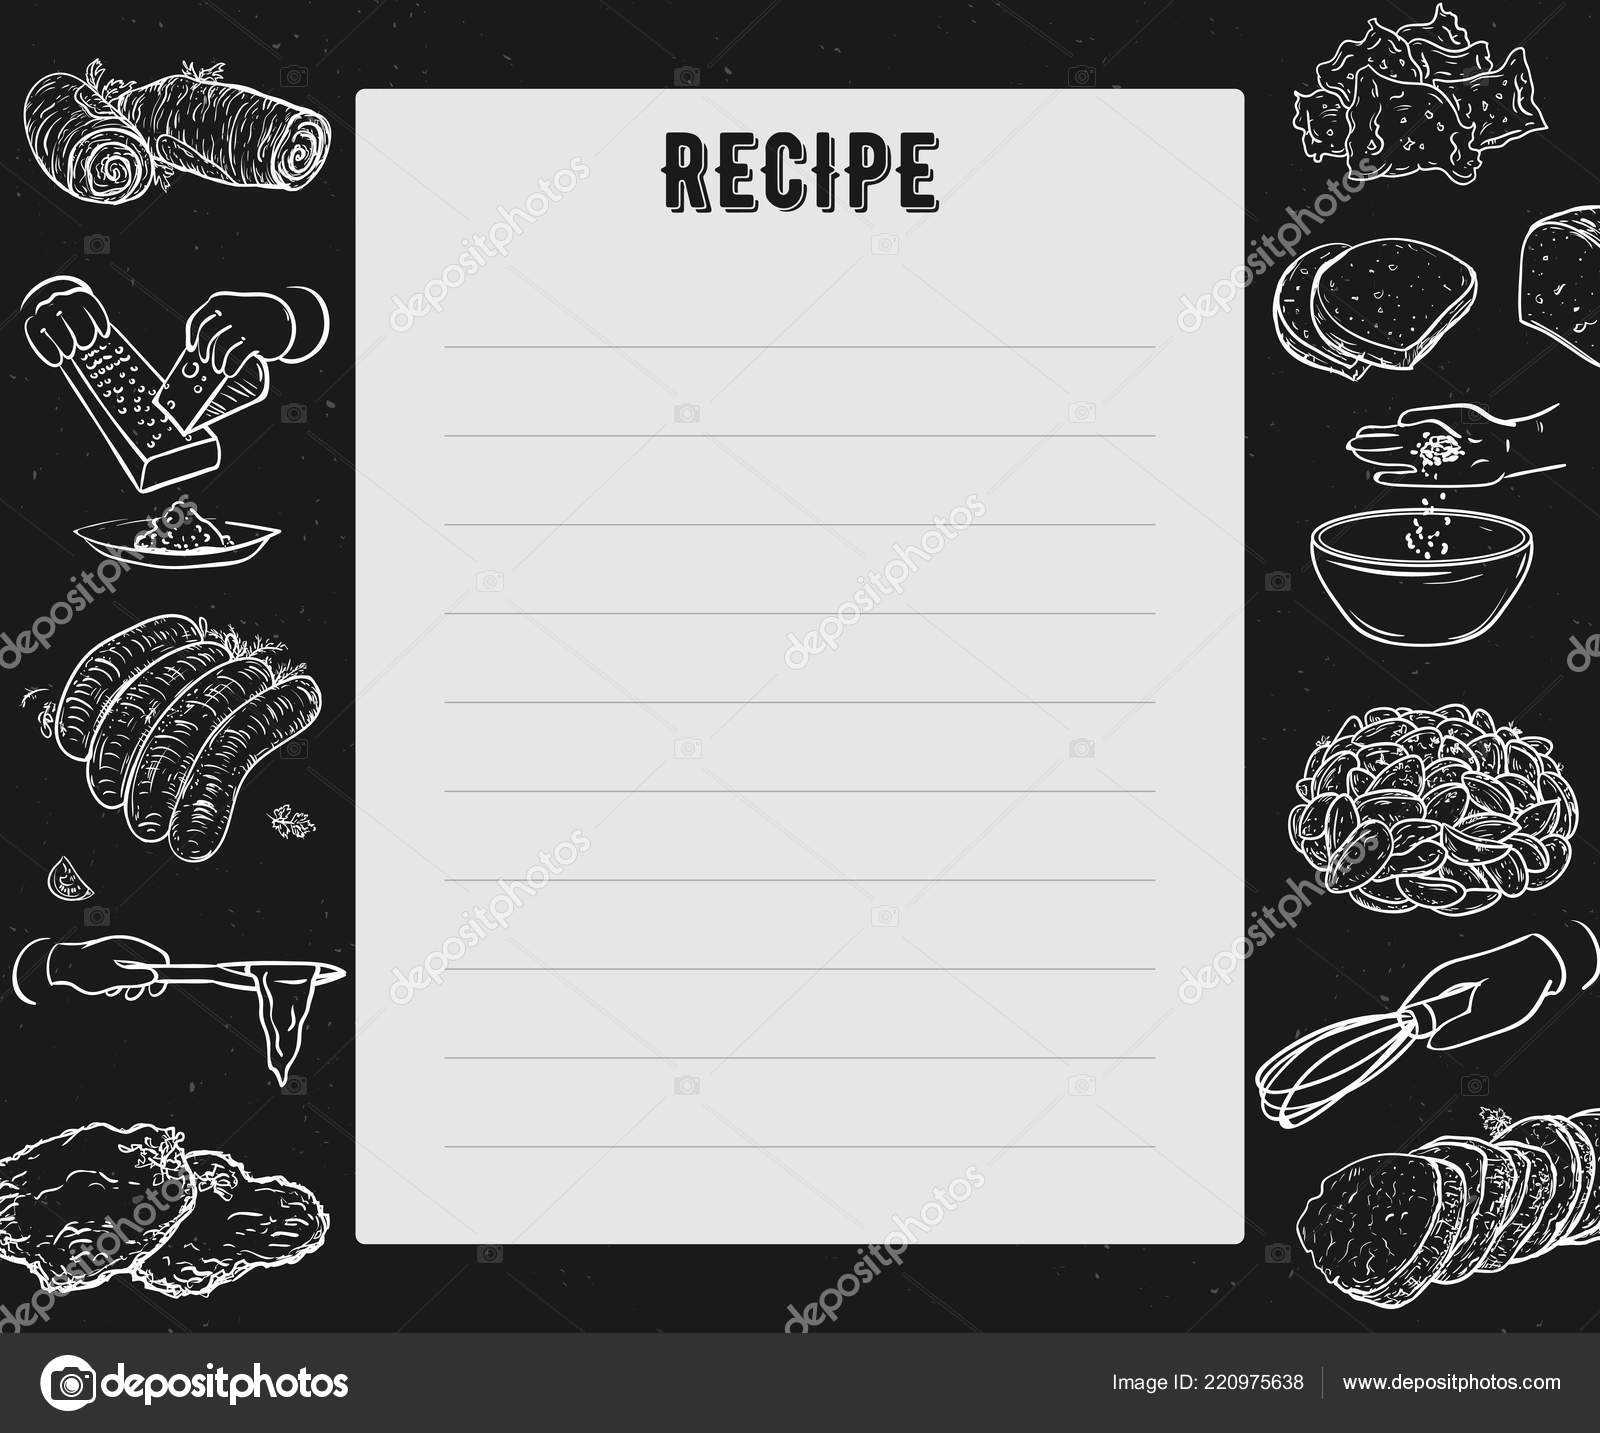 Recipe Card Cookbook Page Design Template Hands Preparing Intended For Recipe Card Design Template